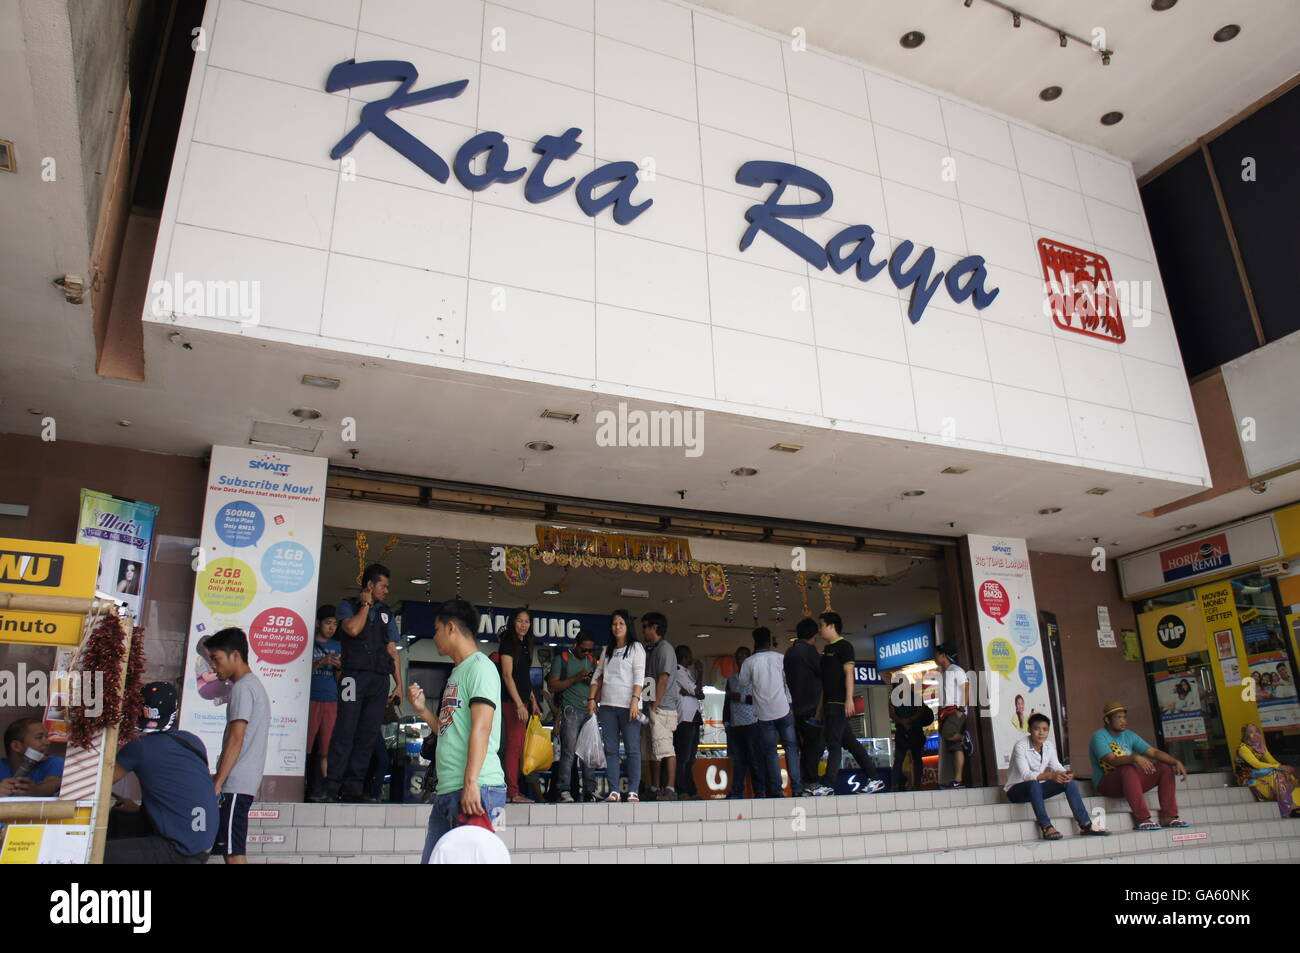 entrance of Kota Raya shopping complex in Kuala Lumpur. Popular hangout for Filipinos and other foreign  migrant - Stock Image